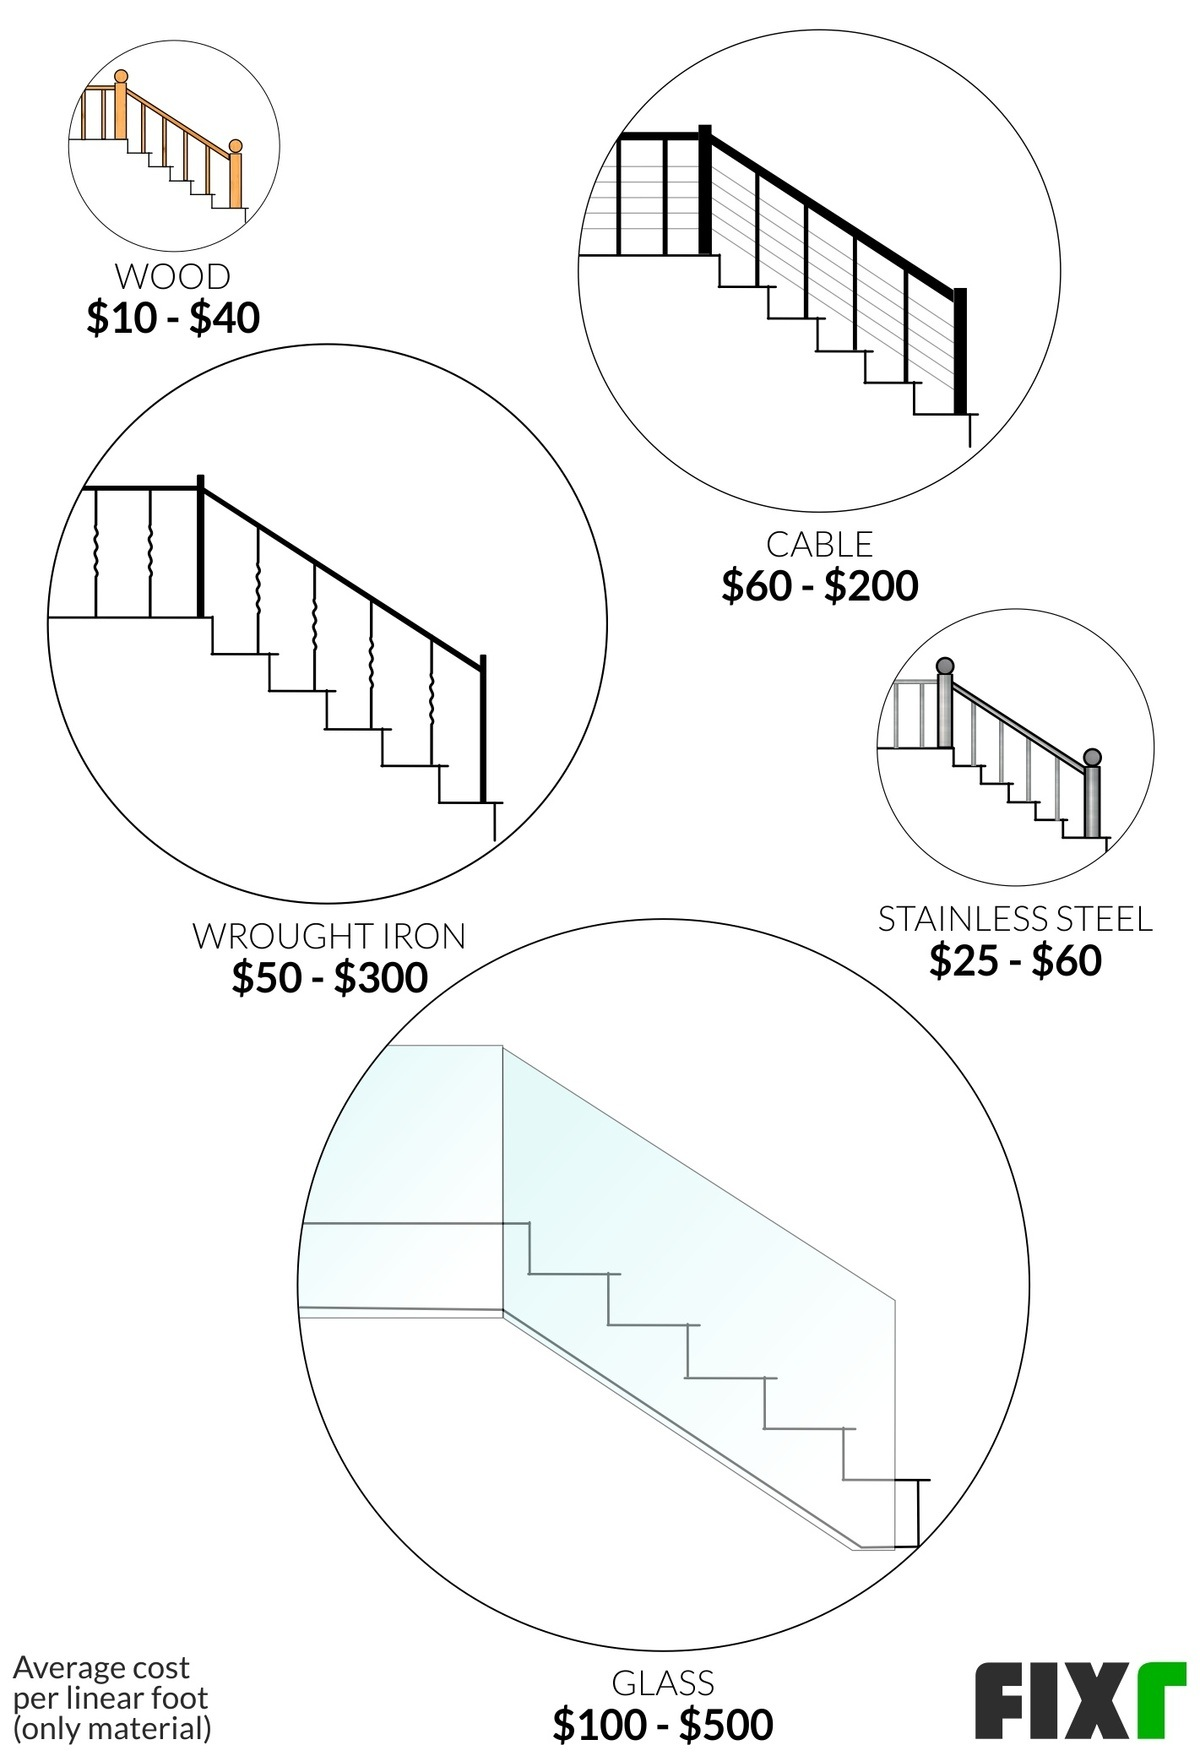 2021 Cost To Build Stairs Interior Staircase Installation Cost